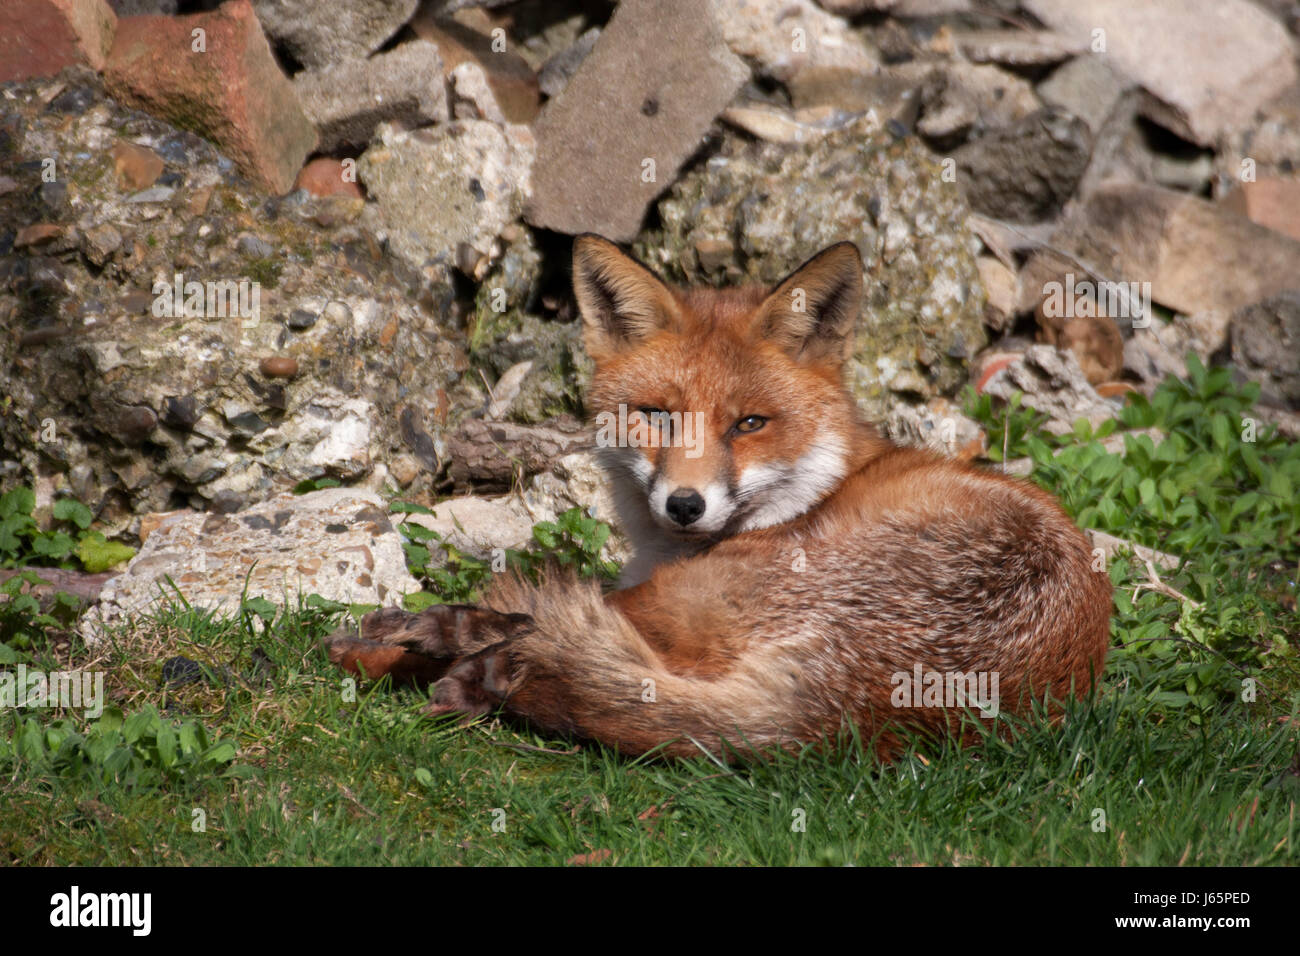 Marvelous Vixen Garden Stock Photos  Vixen Garden Stock Images  Alamy With Luxury Red Fox Vulpes Vulpes Single Adult Female Resting In Urban Garden During  Day With Archaic Garden Earthworms For Sale Also Wyevale Garden Centers In Addition Bens Cookies Covent Garden And Castle Garden Budapest As Well As Lister Teak Garden Furniture Additionally Garden Clearance Manchester From Alamycom With   Luxury Vixen Garden Stock Photos  Vixen Garden Stock Images  Alamy With Archaic Red Fox Vulpes Vulpes Single Adult Female Resting In Urban Garden During  Day And Marvelous Garden Earthworms For Sale Also Wyevale Garden Centers In Addition Bens Cookies Covent Garden From Alamycom